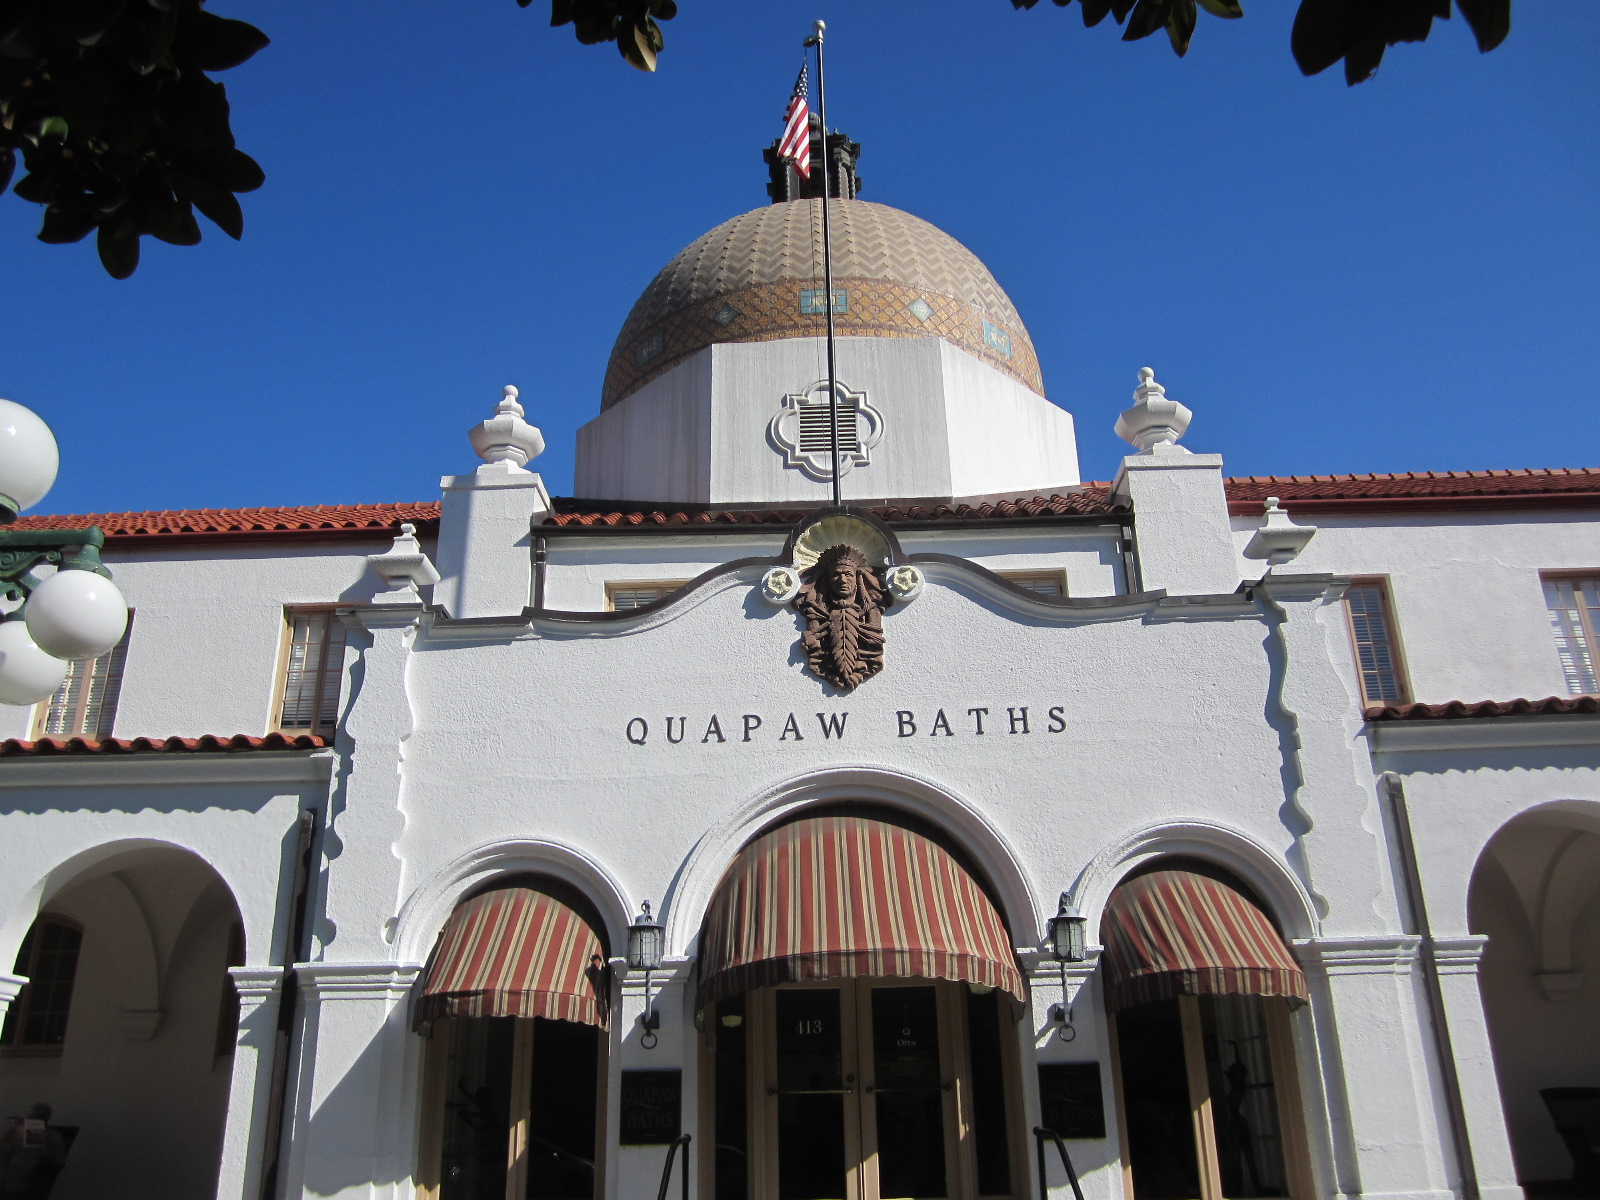 Quapaw Baths in Hot Springs